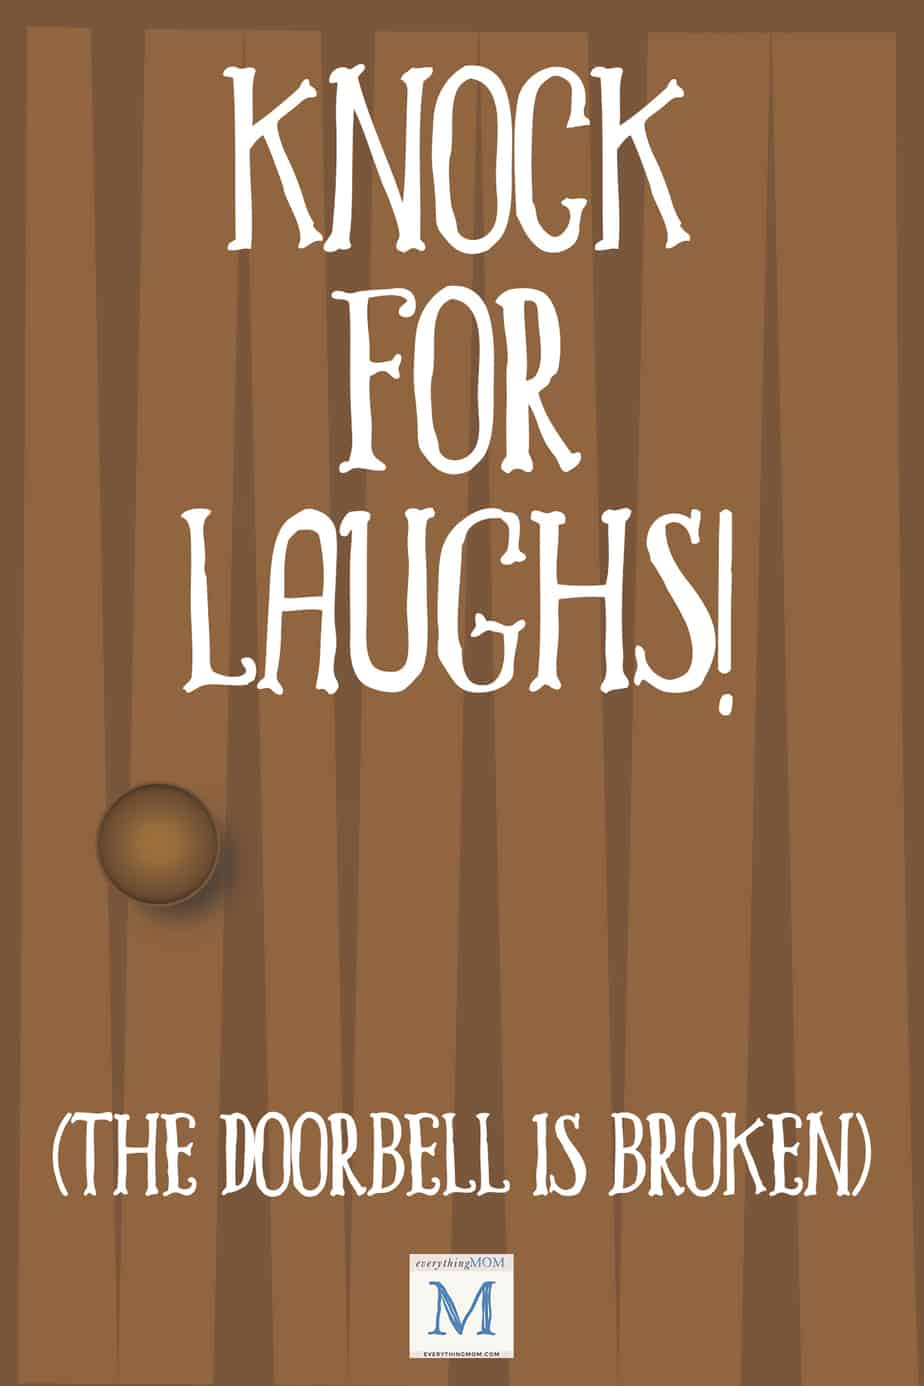 Knock for Laughs! The Doorbell is Broken